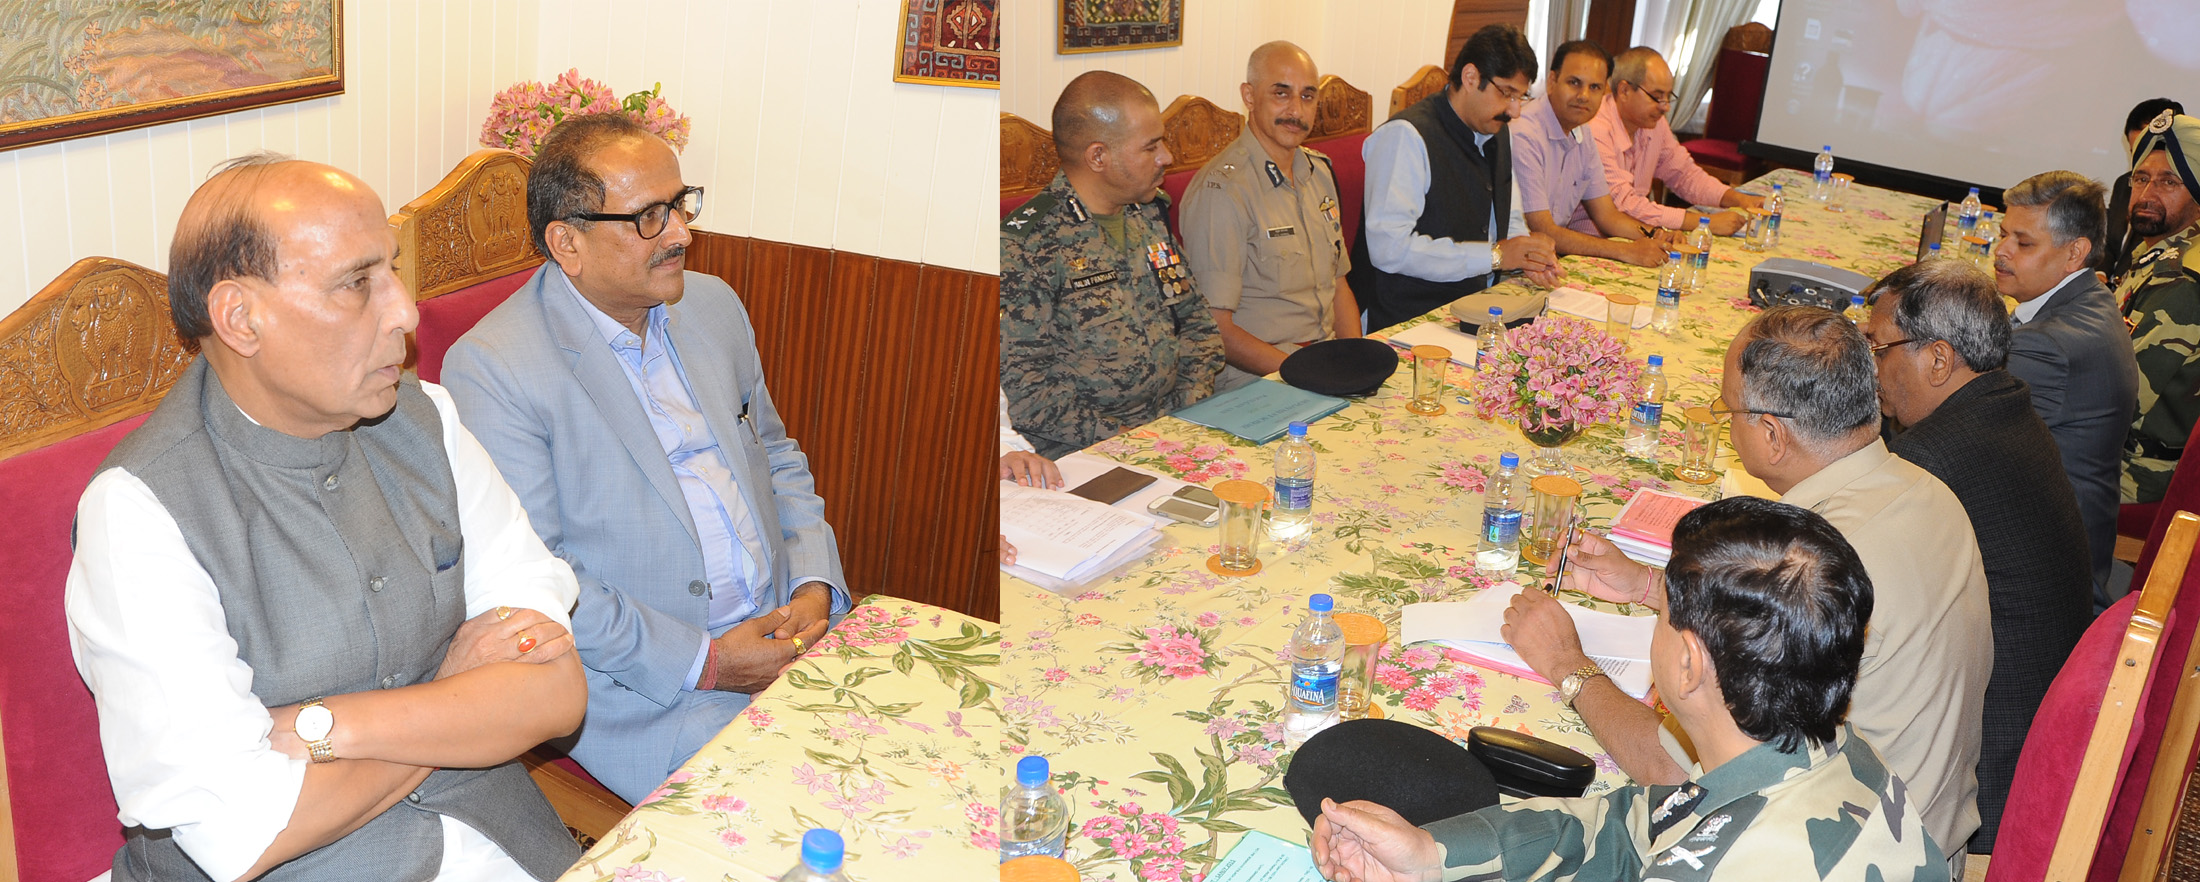 The Union Home Minister, Shri Rajnath Singh chairing a meeting to review the security situation in Jammu and Kashmir, at Srinagar on July 01, 2015. The Deputy Chief Minister of Jammu and Kashmir, Dr. Nirmal Kumar Singh is also seen.